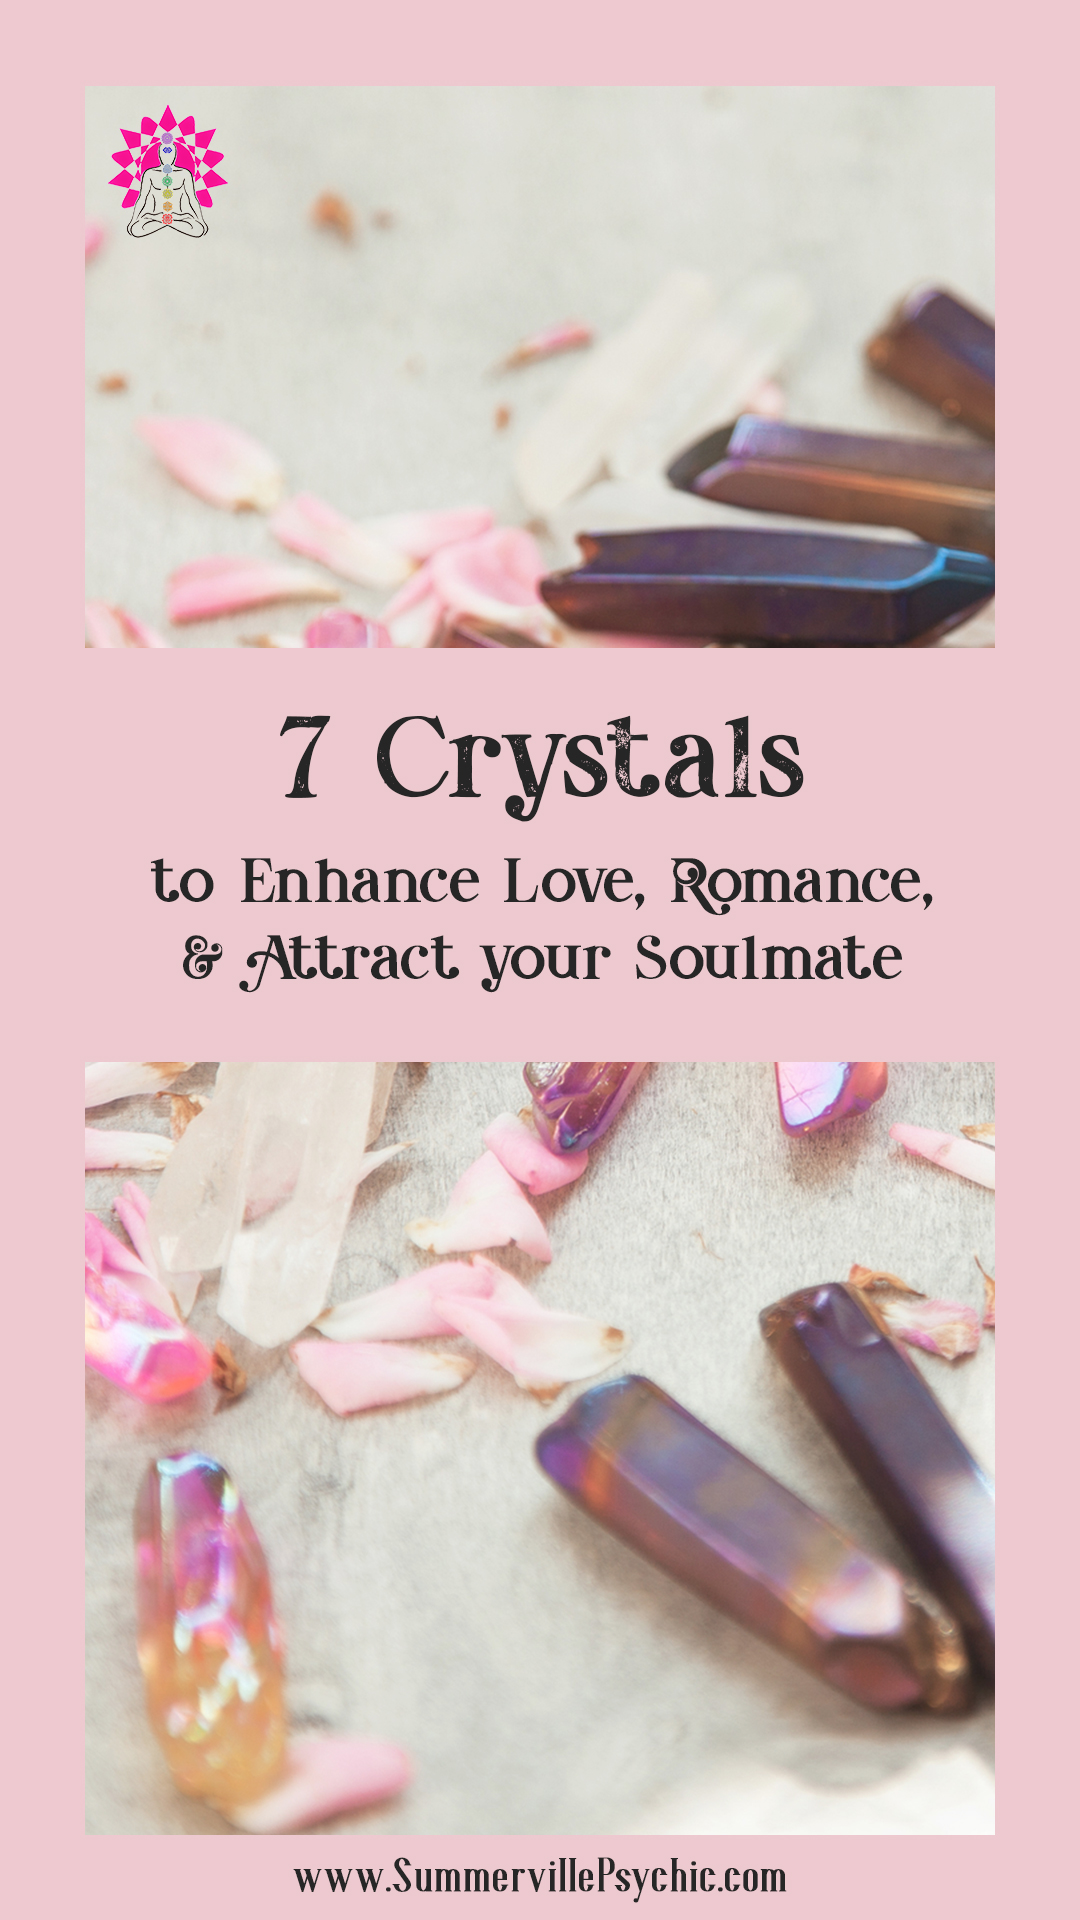 7 Crystals for Love